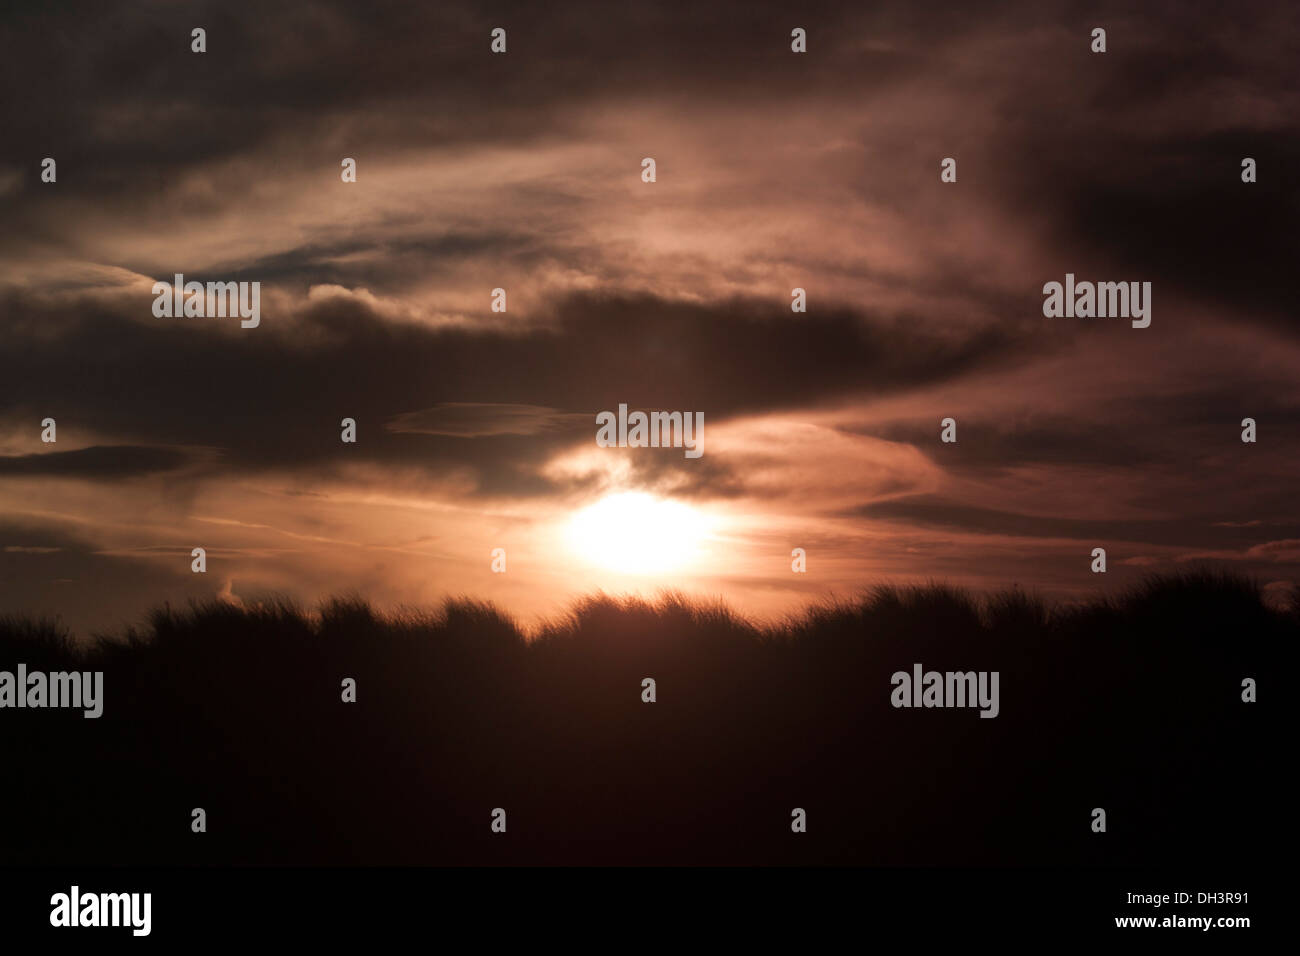 Sunrising over Hill - Stock Image